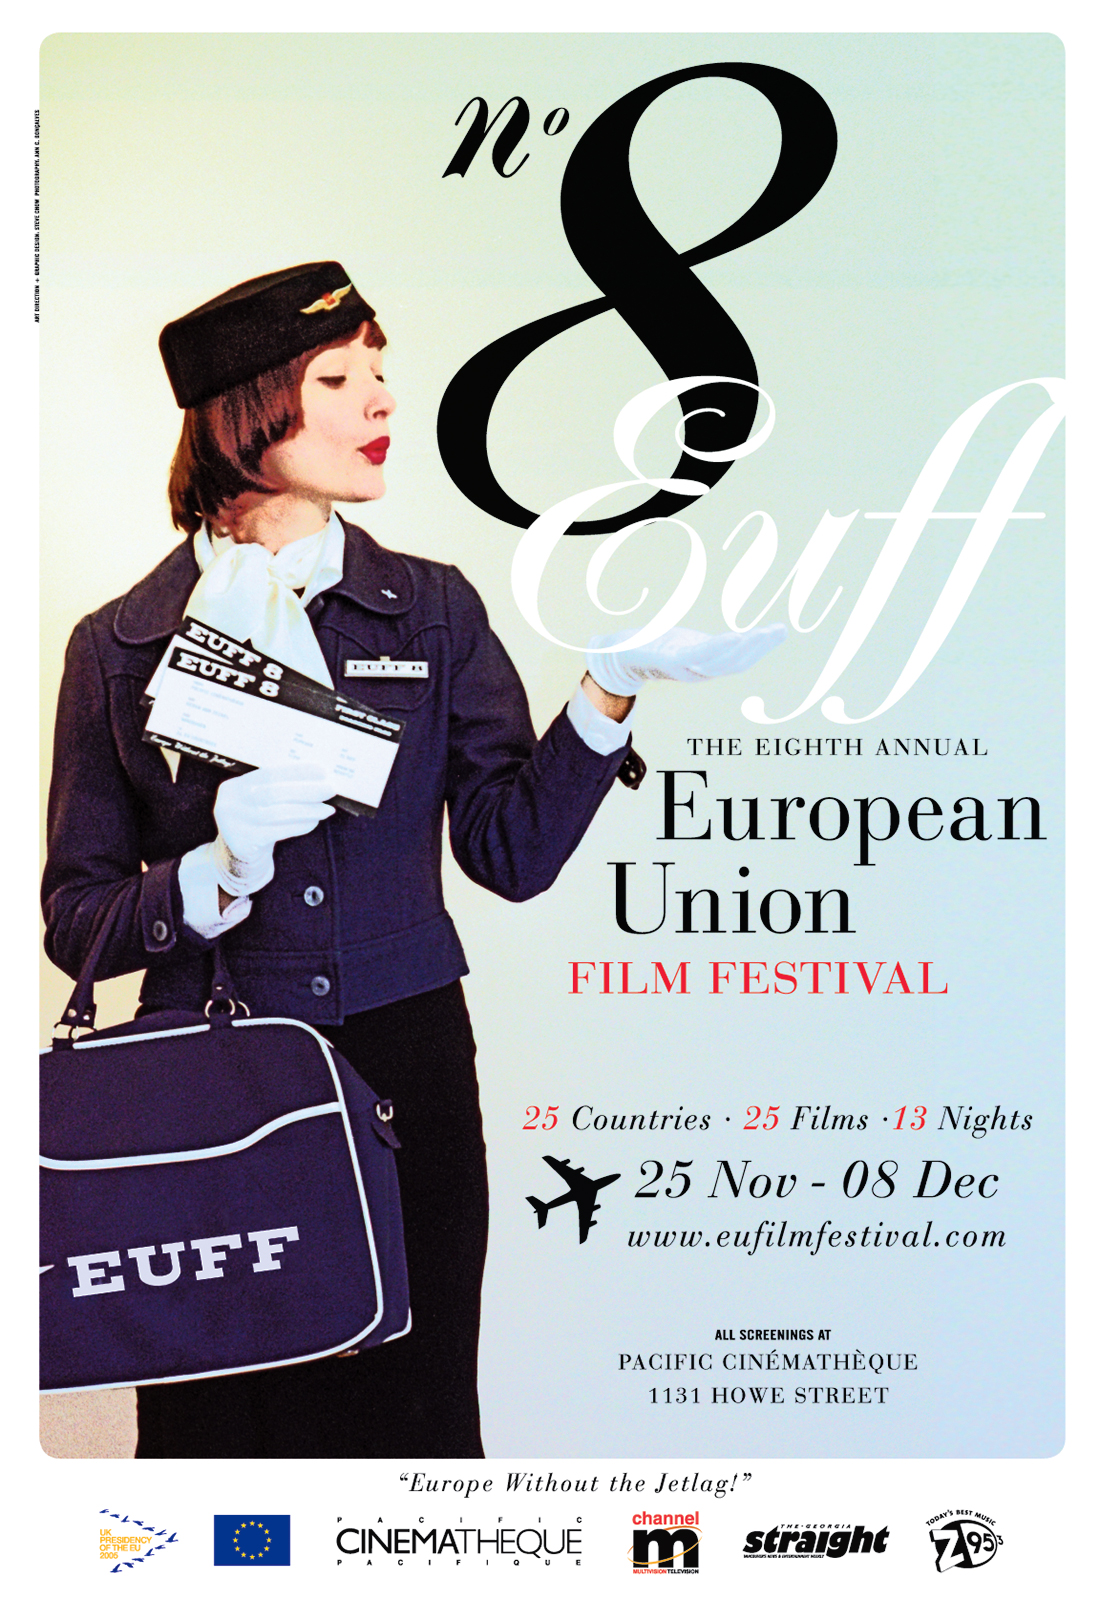 8th Annual European Union Film Festival Poster